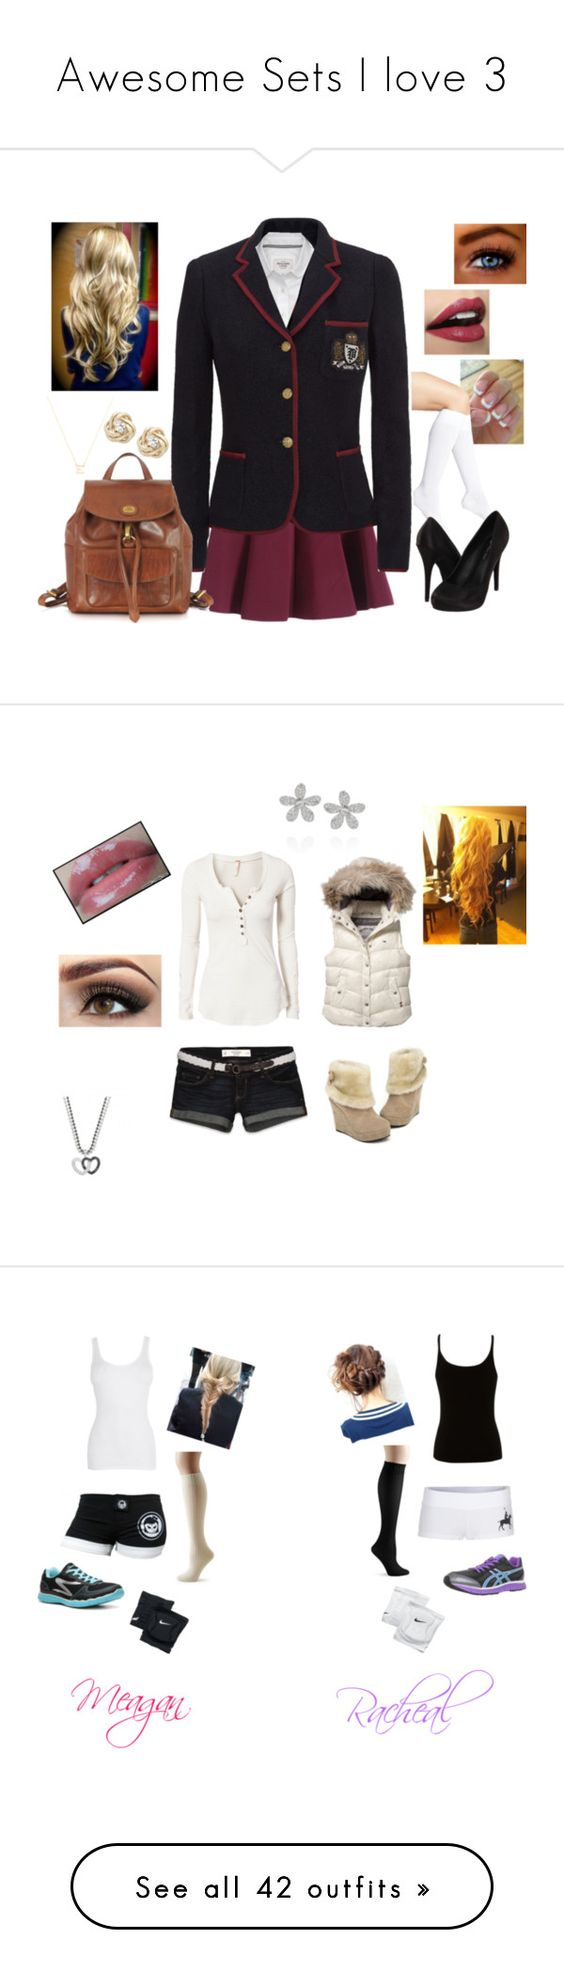 """""""Awesome Sets I love 3"""" by kiara-fleming ❤ liked on Polyvore featuring Nordstrom, Polo Ralph Lauren, Abercrombie & Fitch, Michael Antonio, The Bridge, NYX, Wrapped In Love, women's clothing, women and female"""